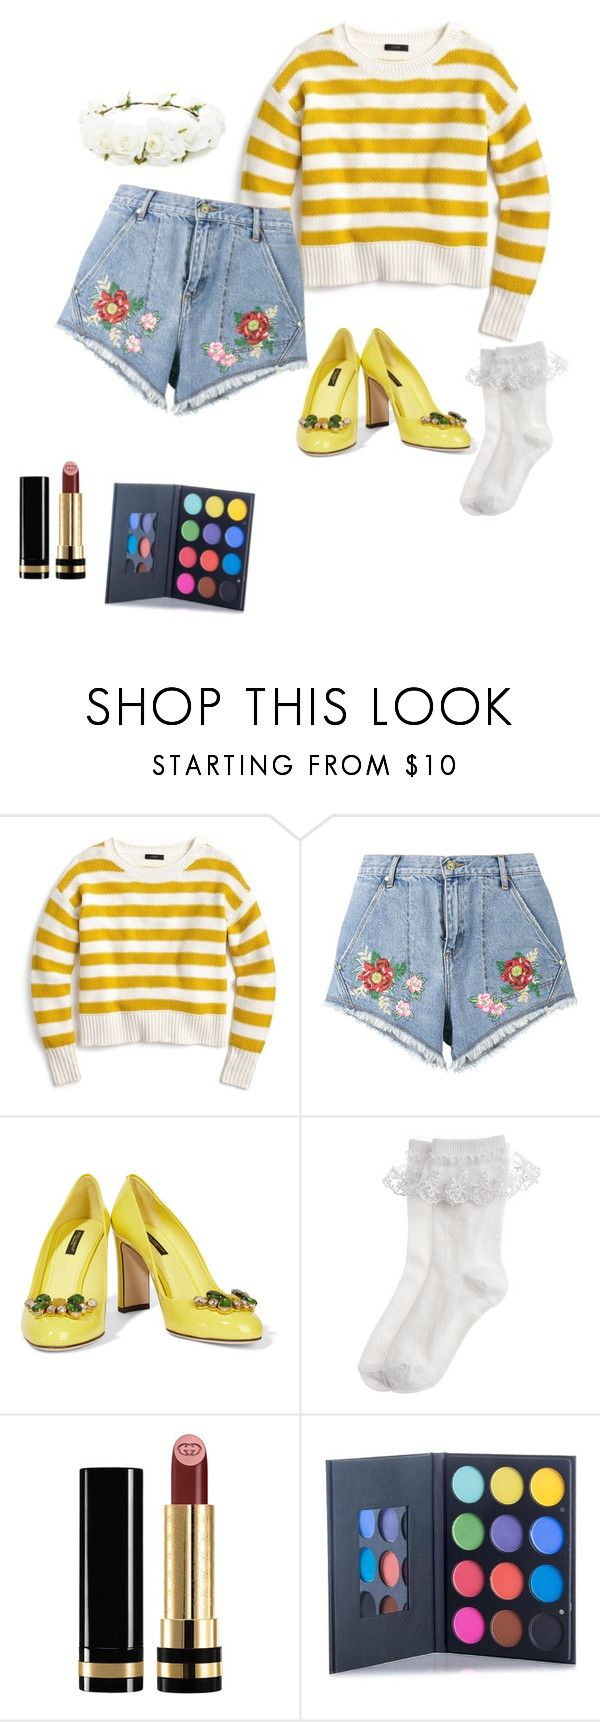 """""""🌈"""" by minngi ❤ liked on Polyvore featuring J.Crew, House of Holland, Dolce&Gabbana, Monsoon, Gucci and Forever 21"""